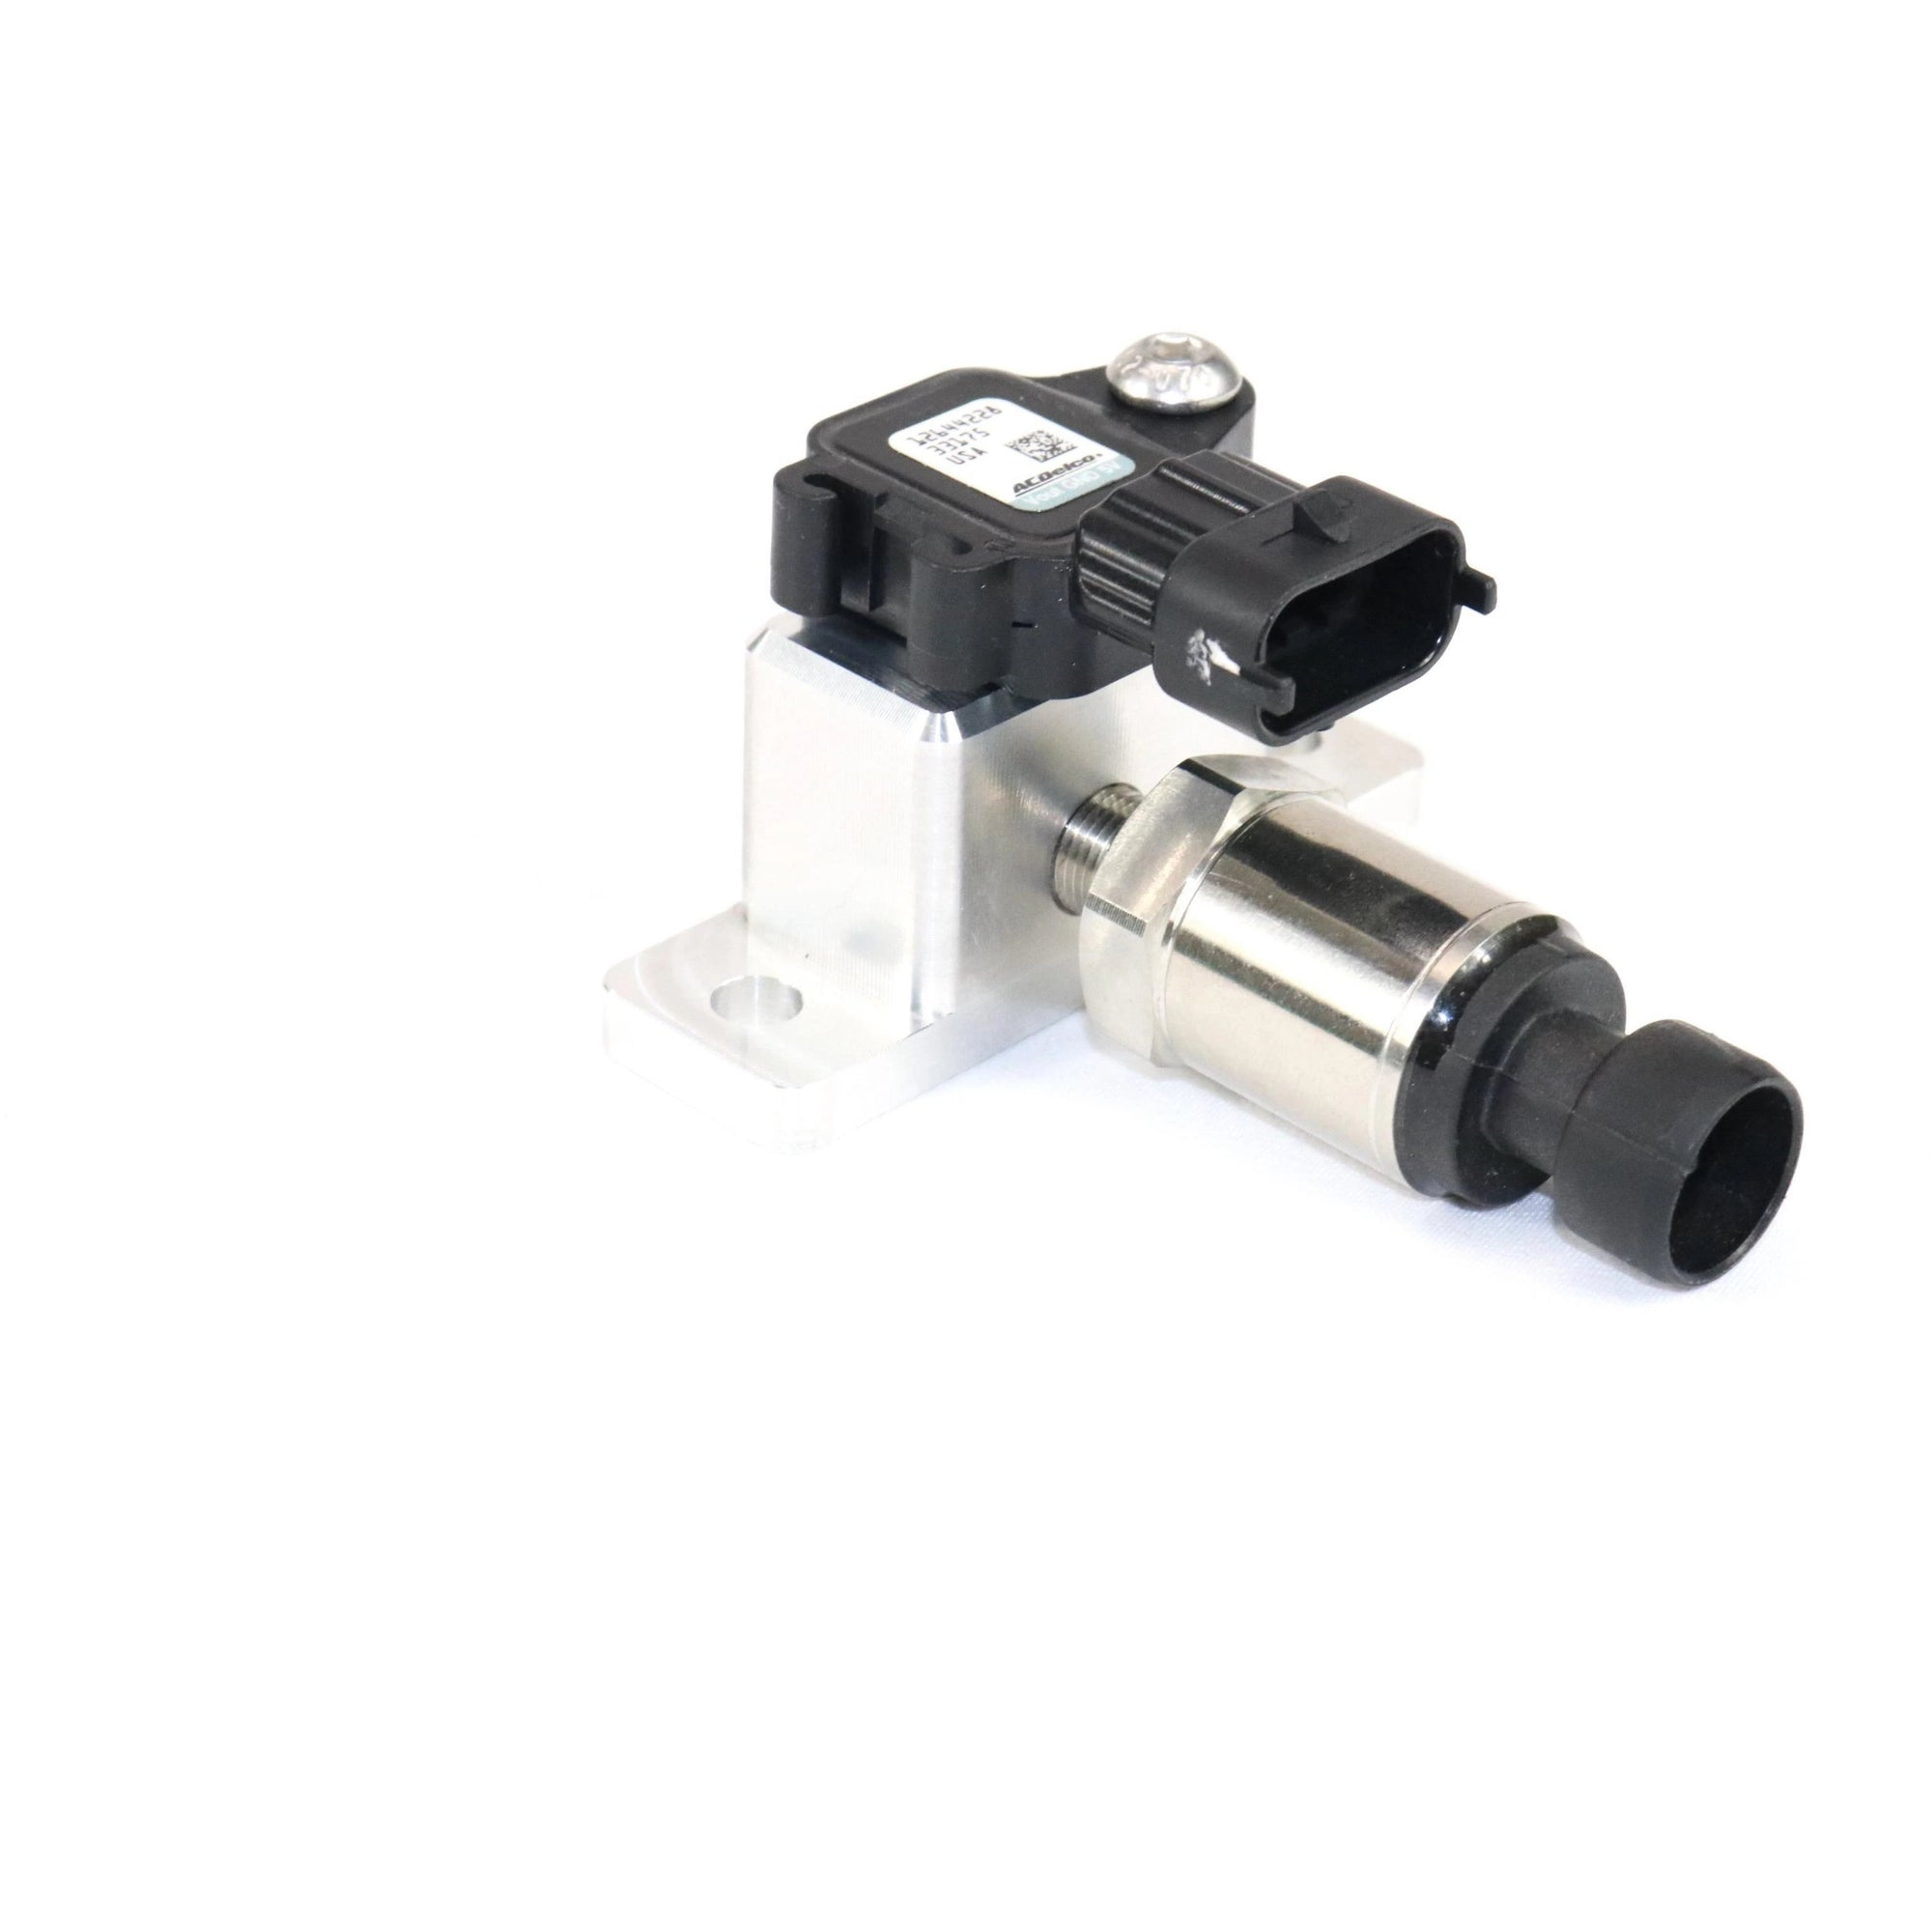 Motion Raceworks LSA/LT1/LT4 Remote MAP Sensor Mounting Block-Motion Raceworks-Motion Raceworks